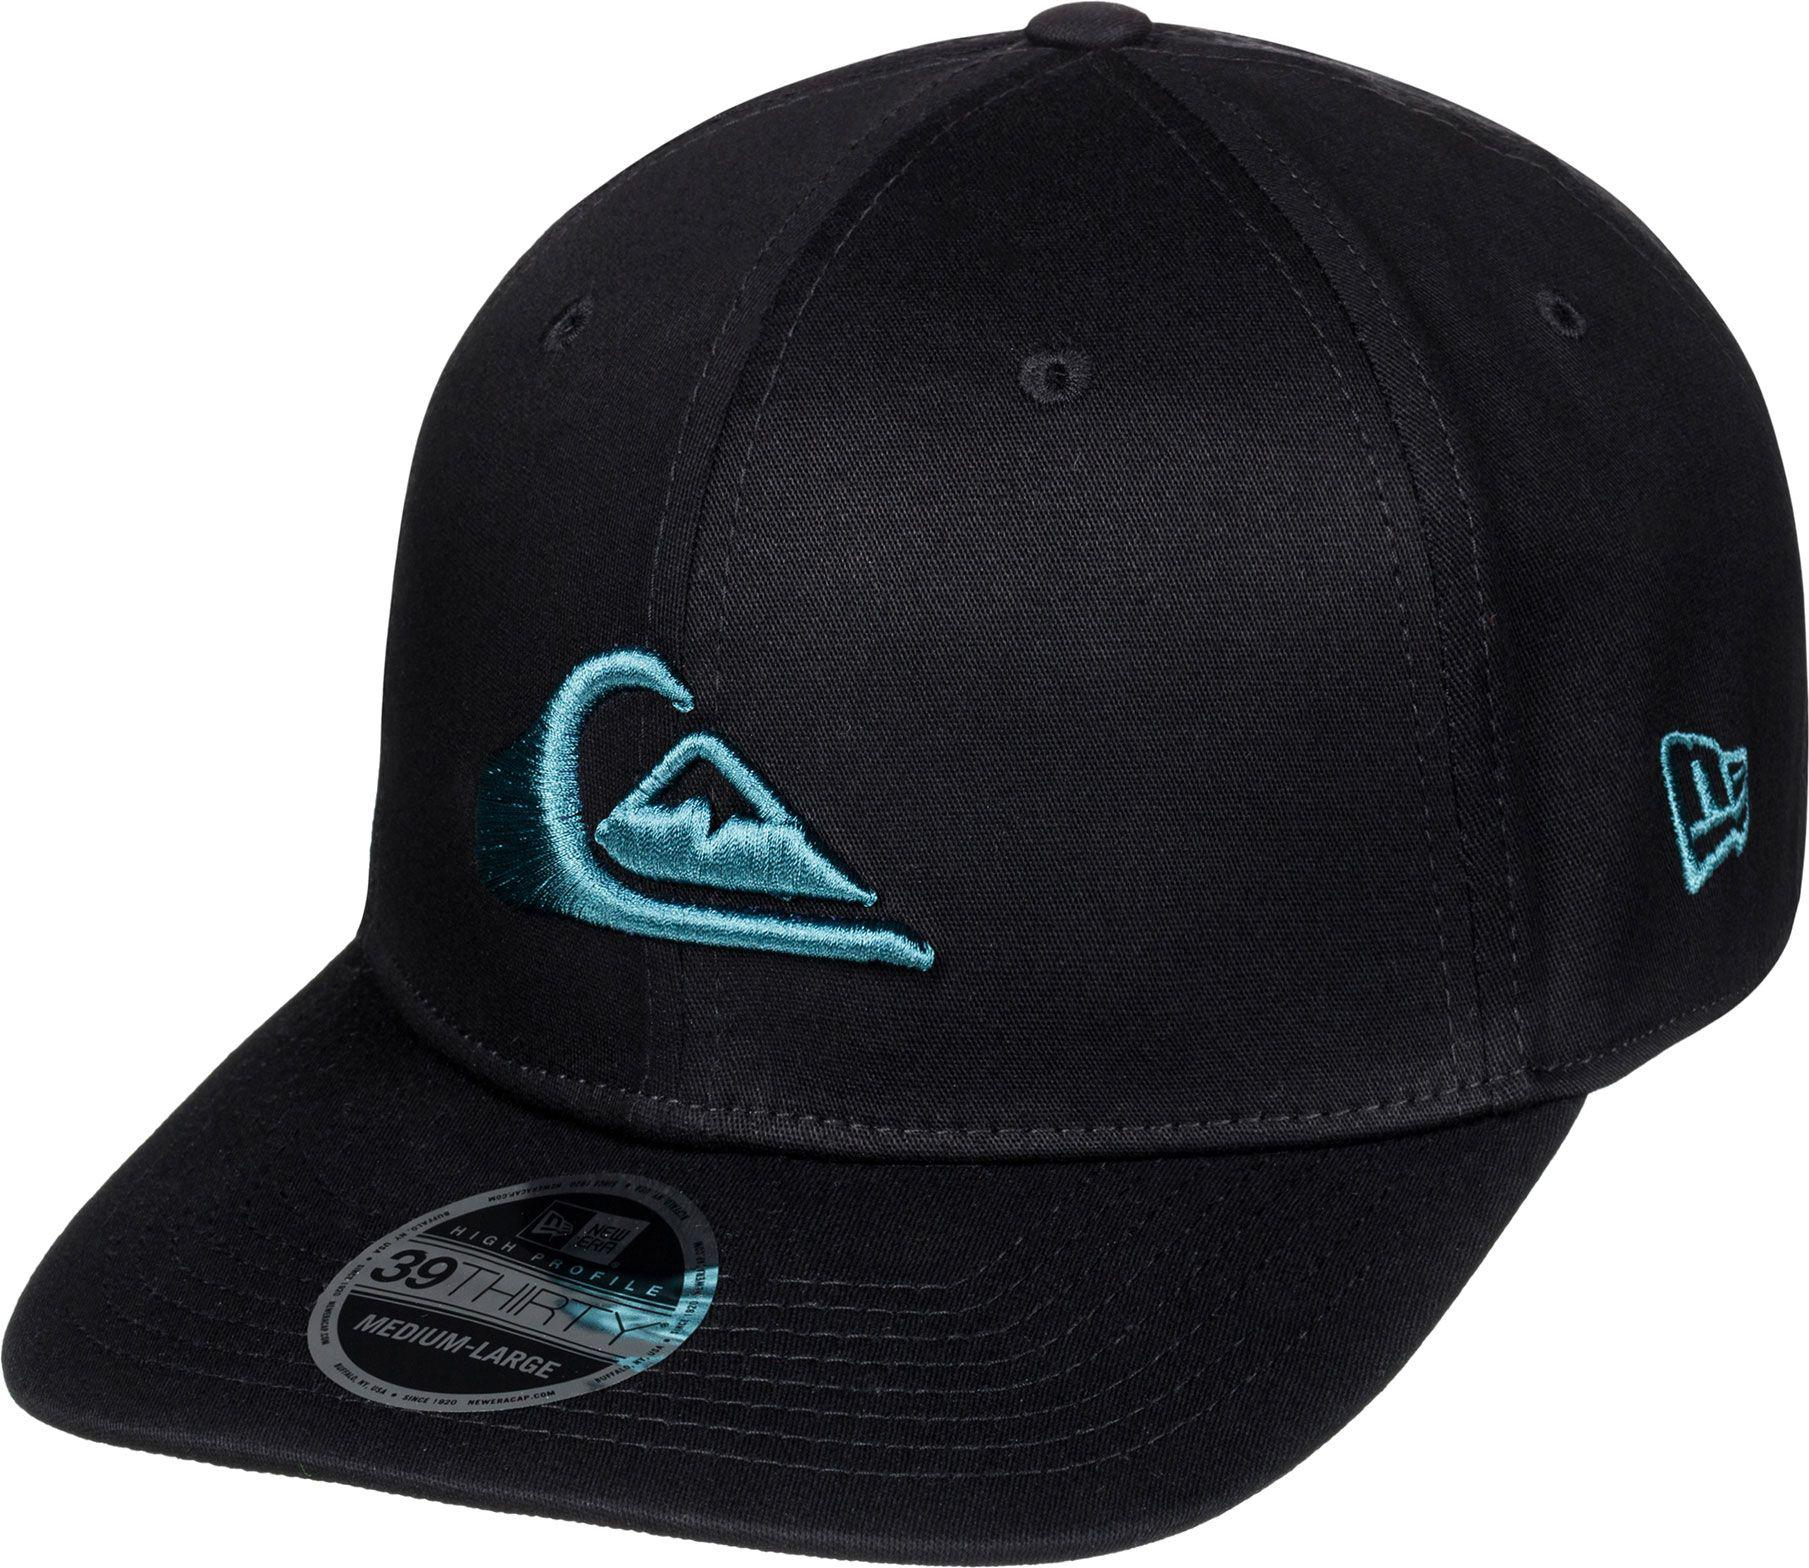 detailed look 1db79 8ea85 ... promo code for lyst quiksilver mountain wave new era hat in blue for men  954b2 6c7b5